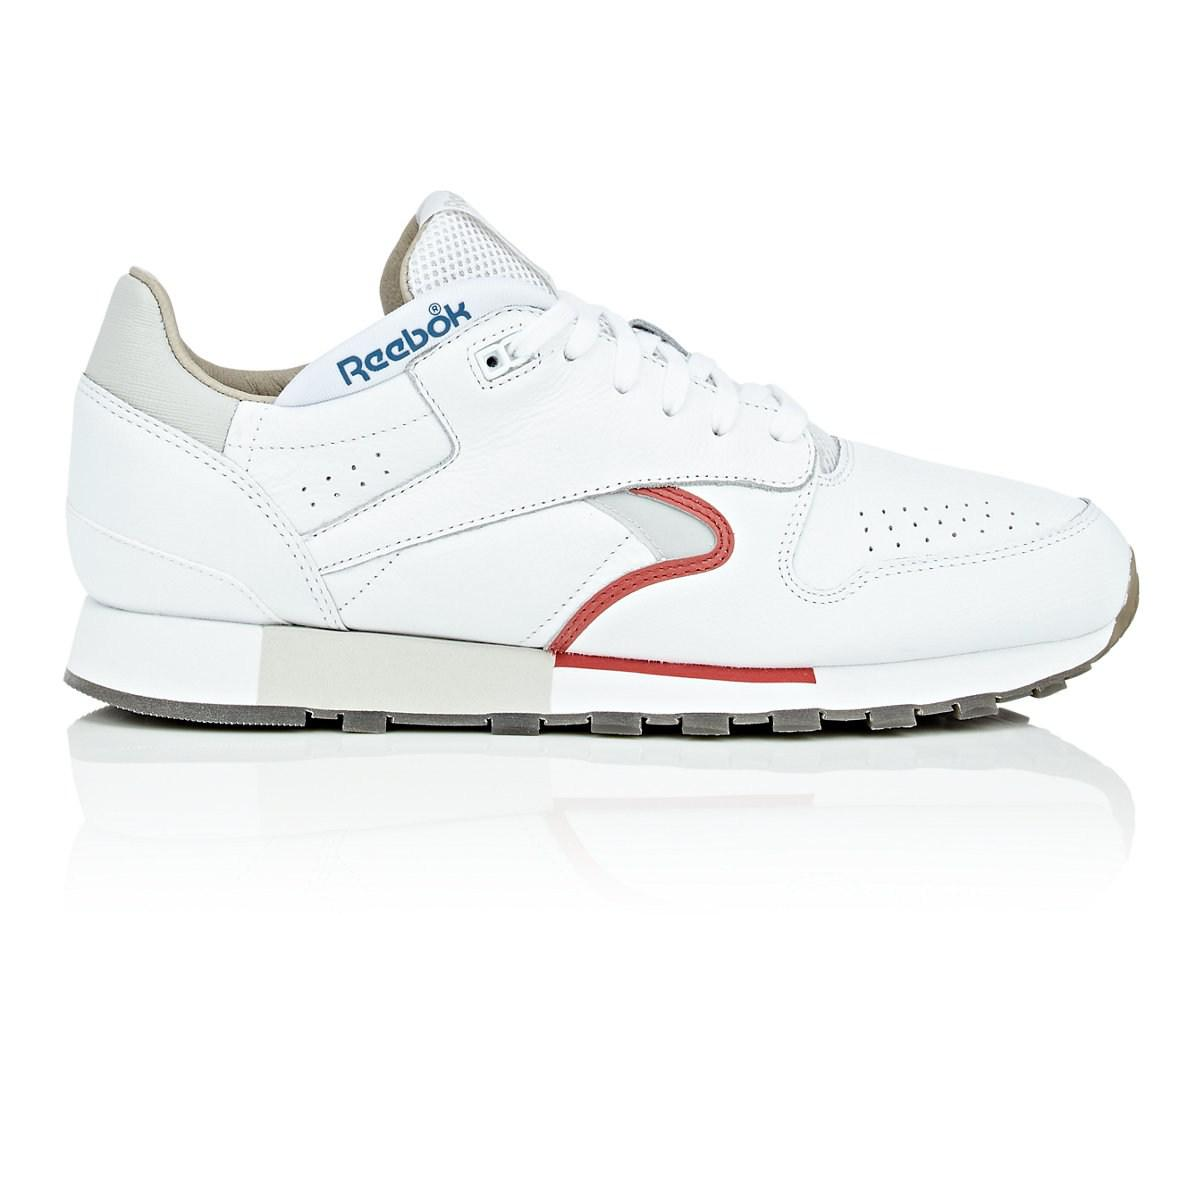 Lyst - Reebok Urge Leather Sneakers in White for Men a3a4d77fe